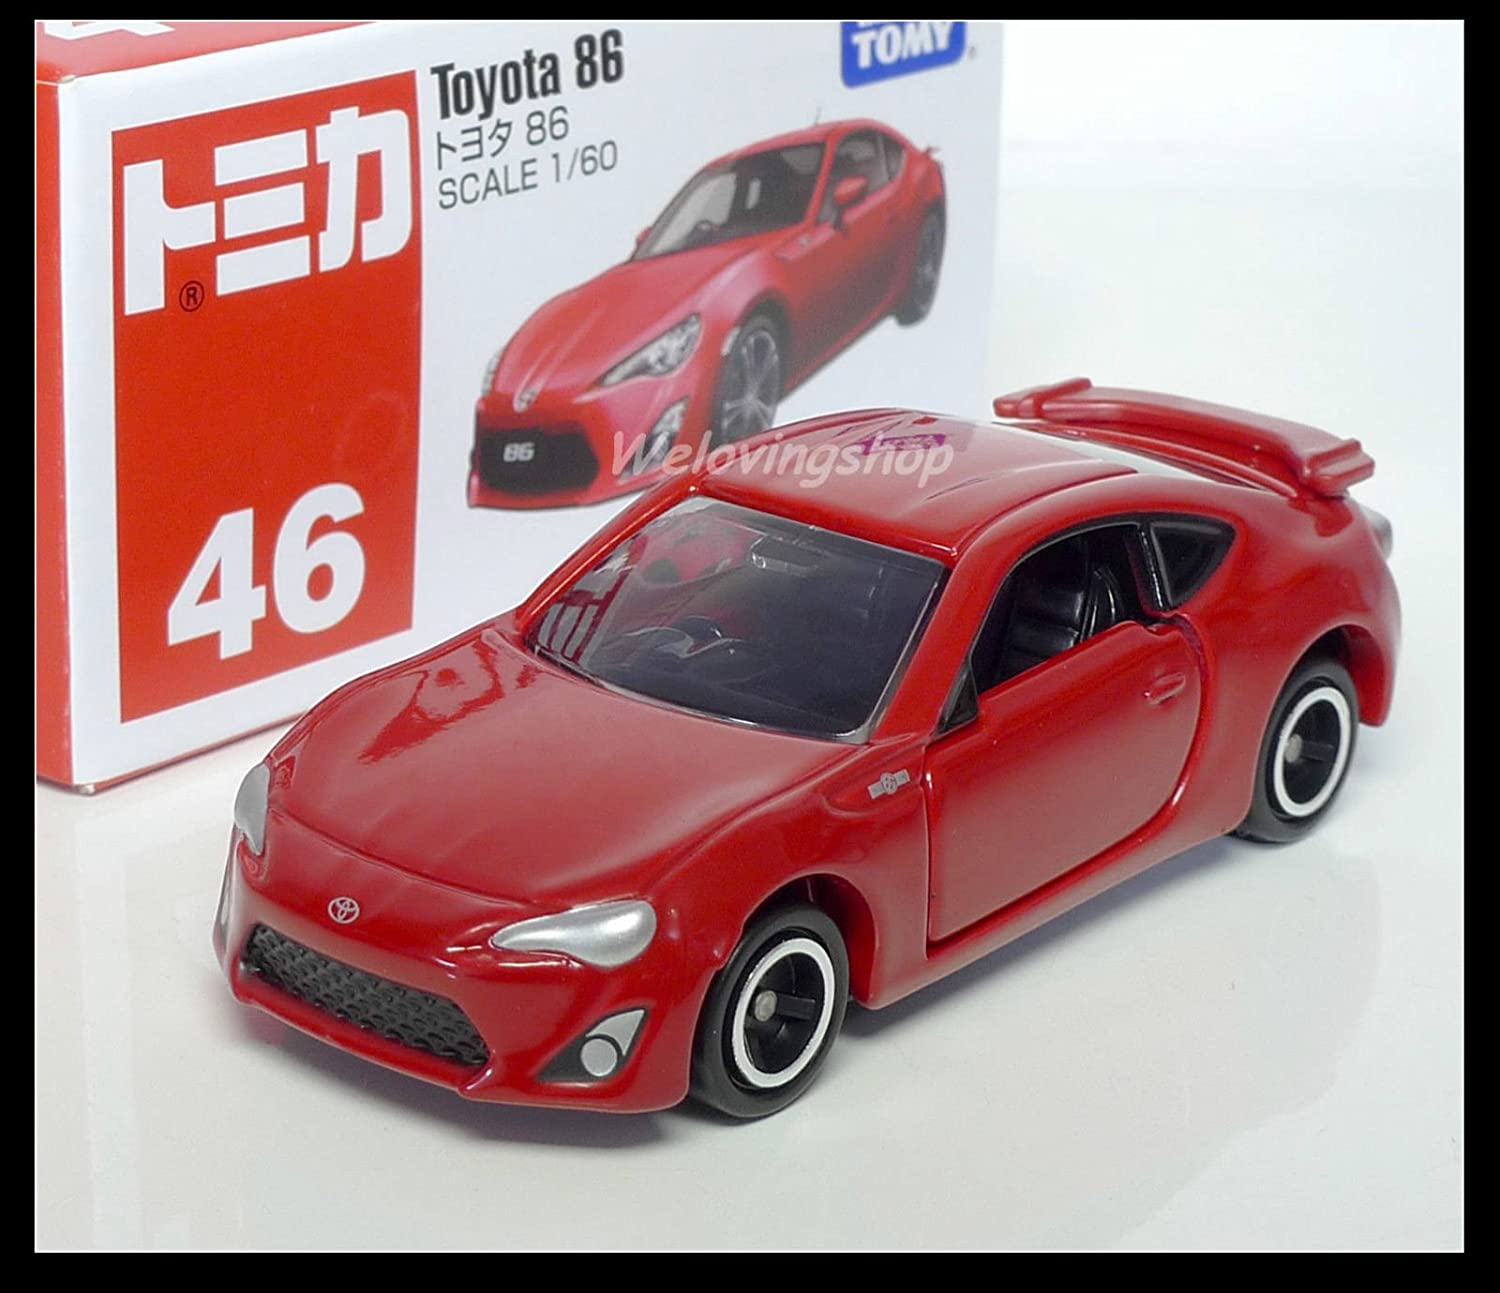 NEW Takara Tomica Tomy #46 Toyota 86 RED Scale 1//60 Diecast Toy Car Japan